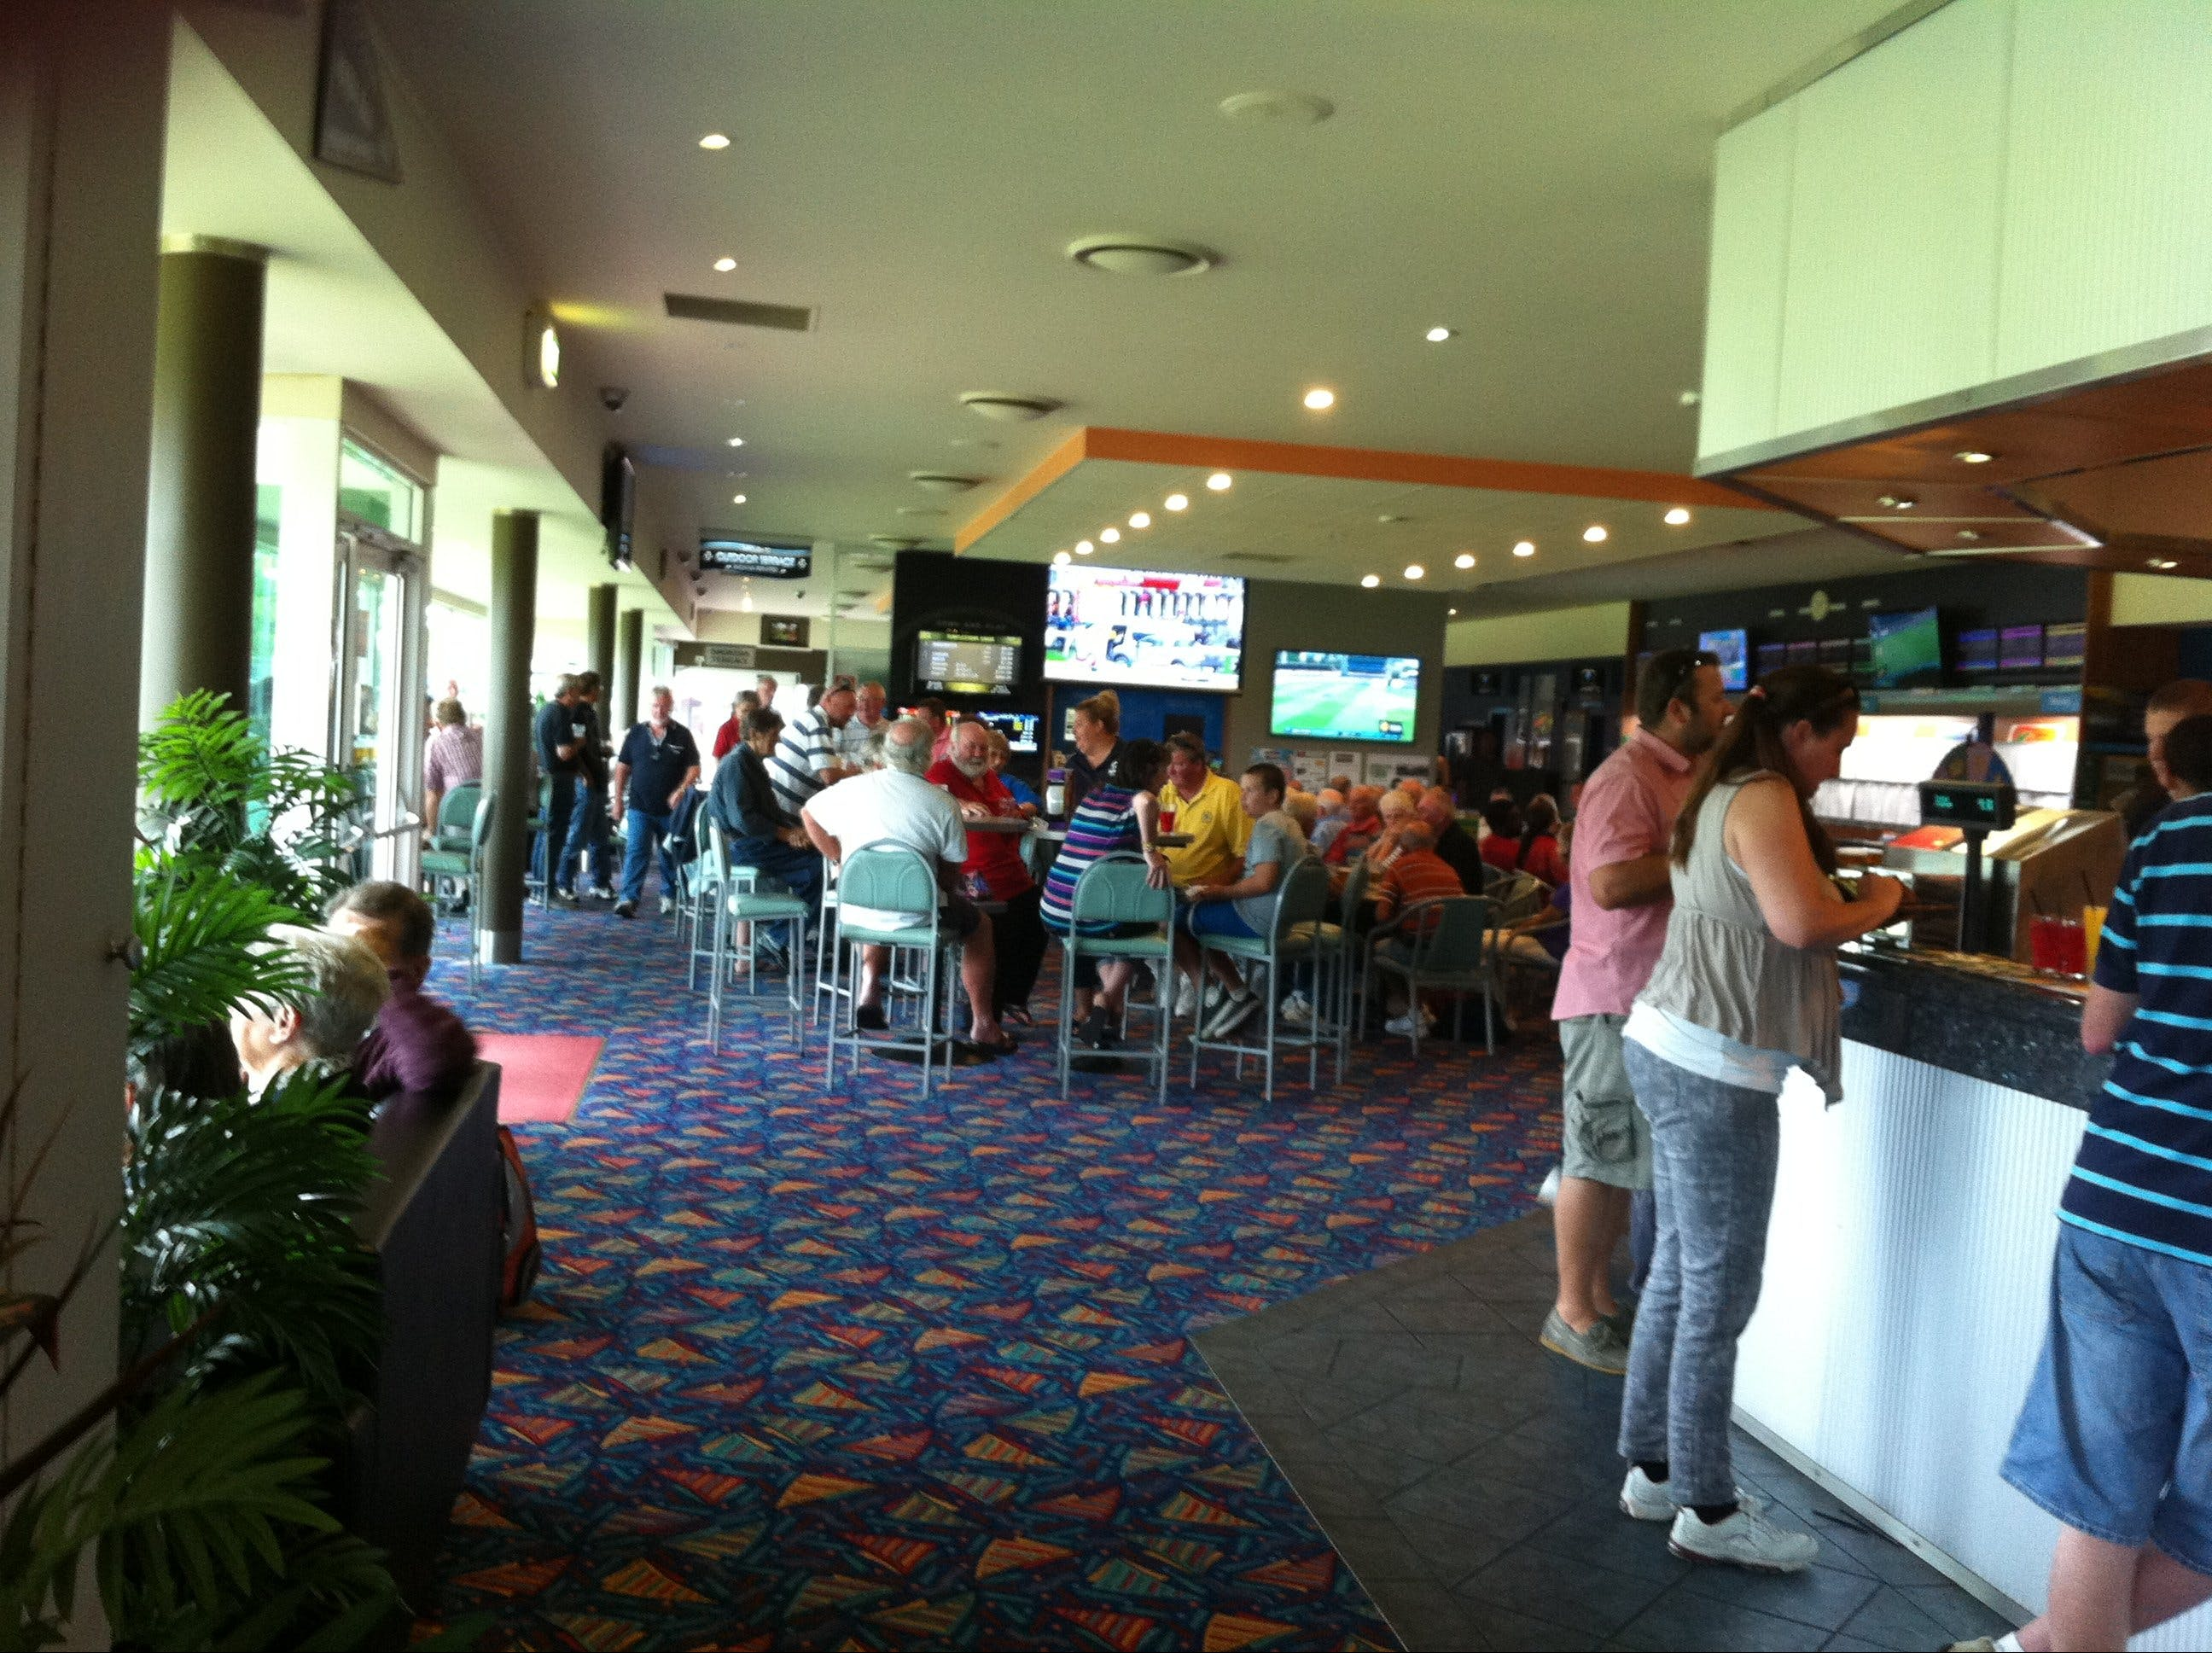 Moruya Bowling and Recreation Club - Stayed